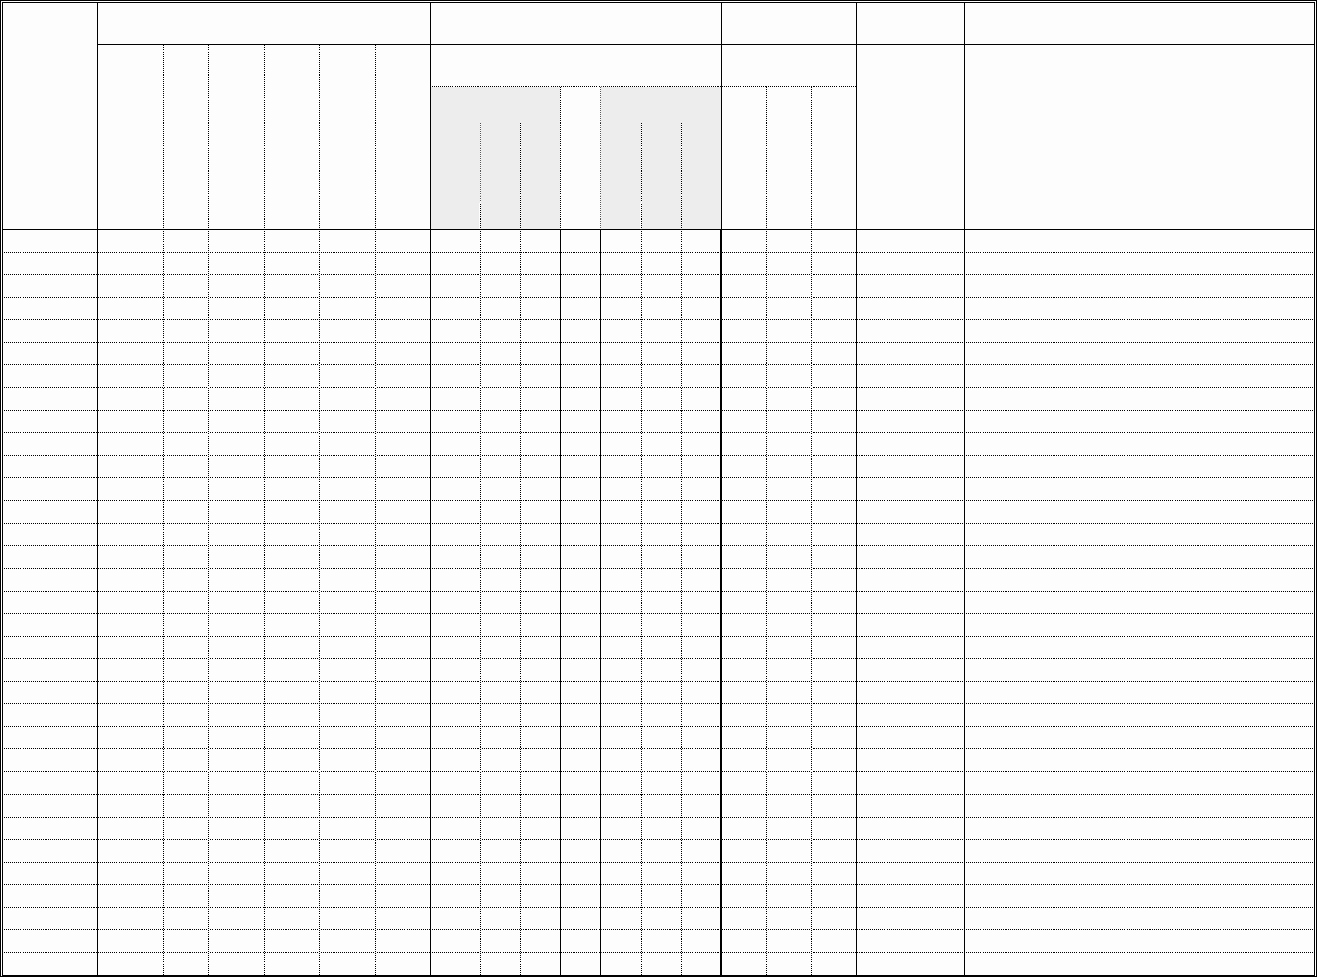 Bipolar Mood Chart Template Best Of Mood Chart Template In Word and Pdf formats